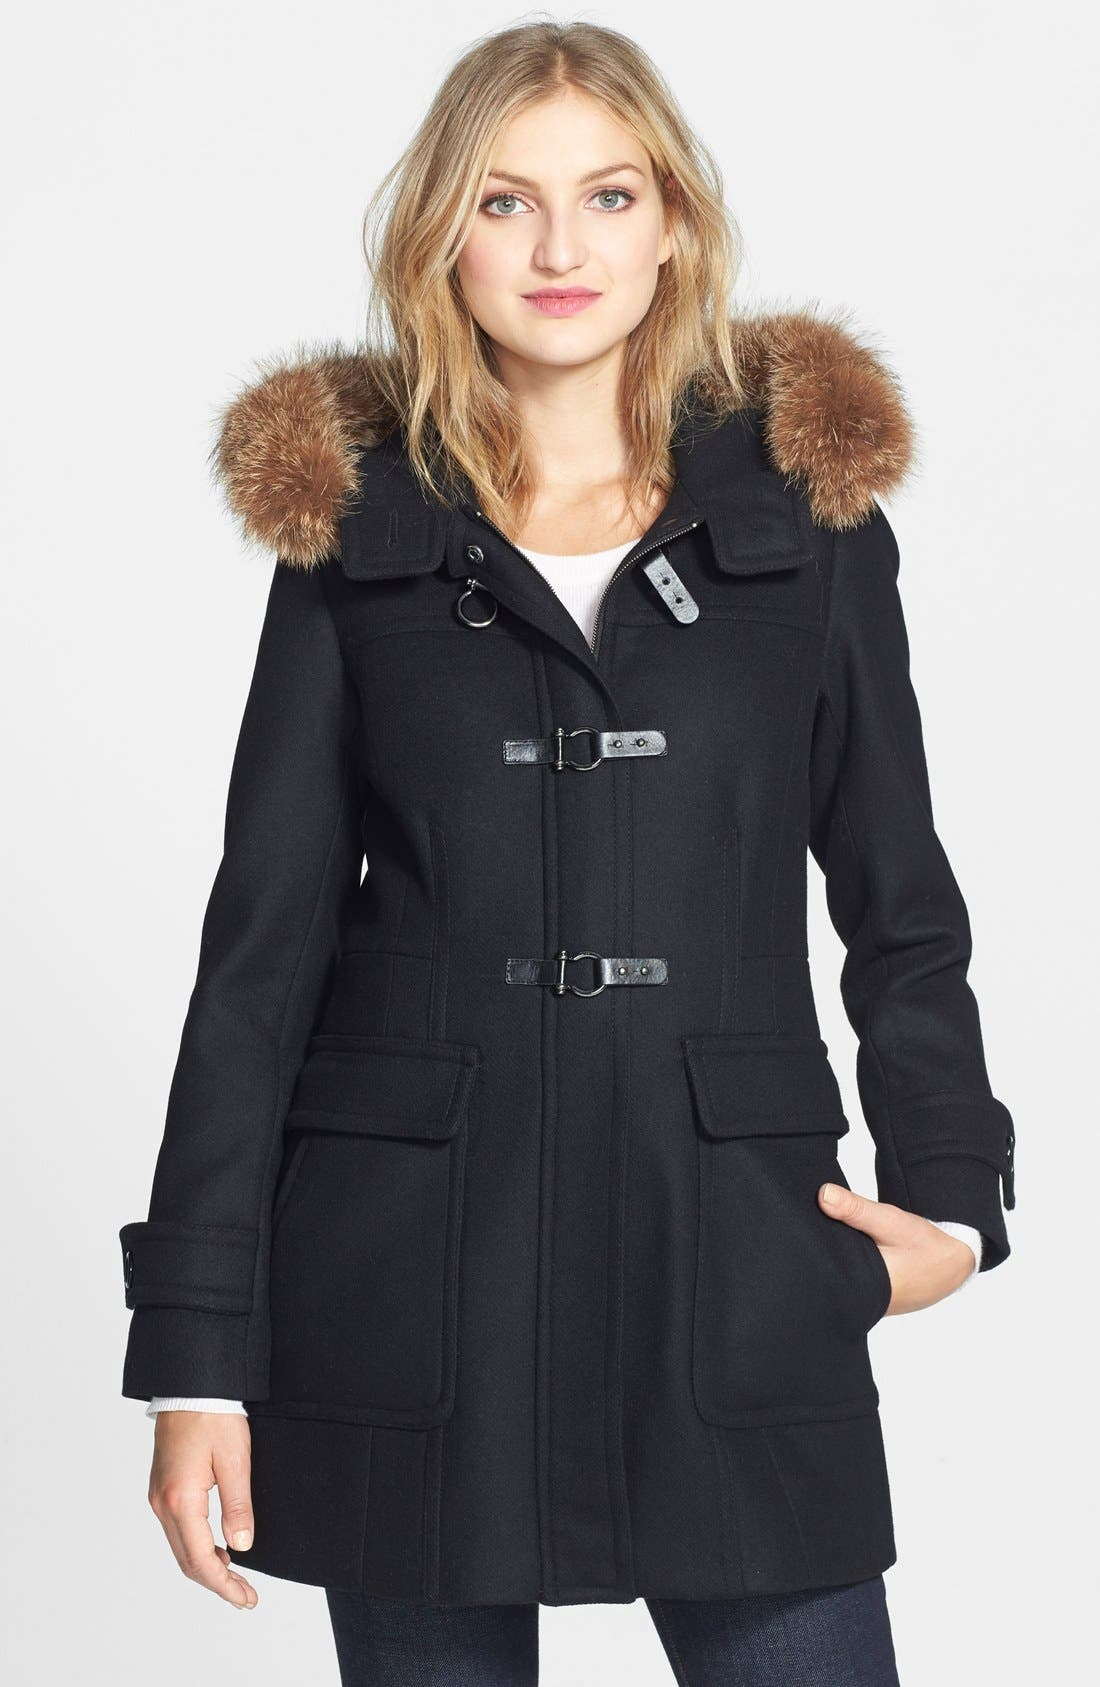 Alternate Image 1 Selected - Trina Turk Genuine Coyote Fur Trim Wool Blend Duffle Coat